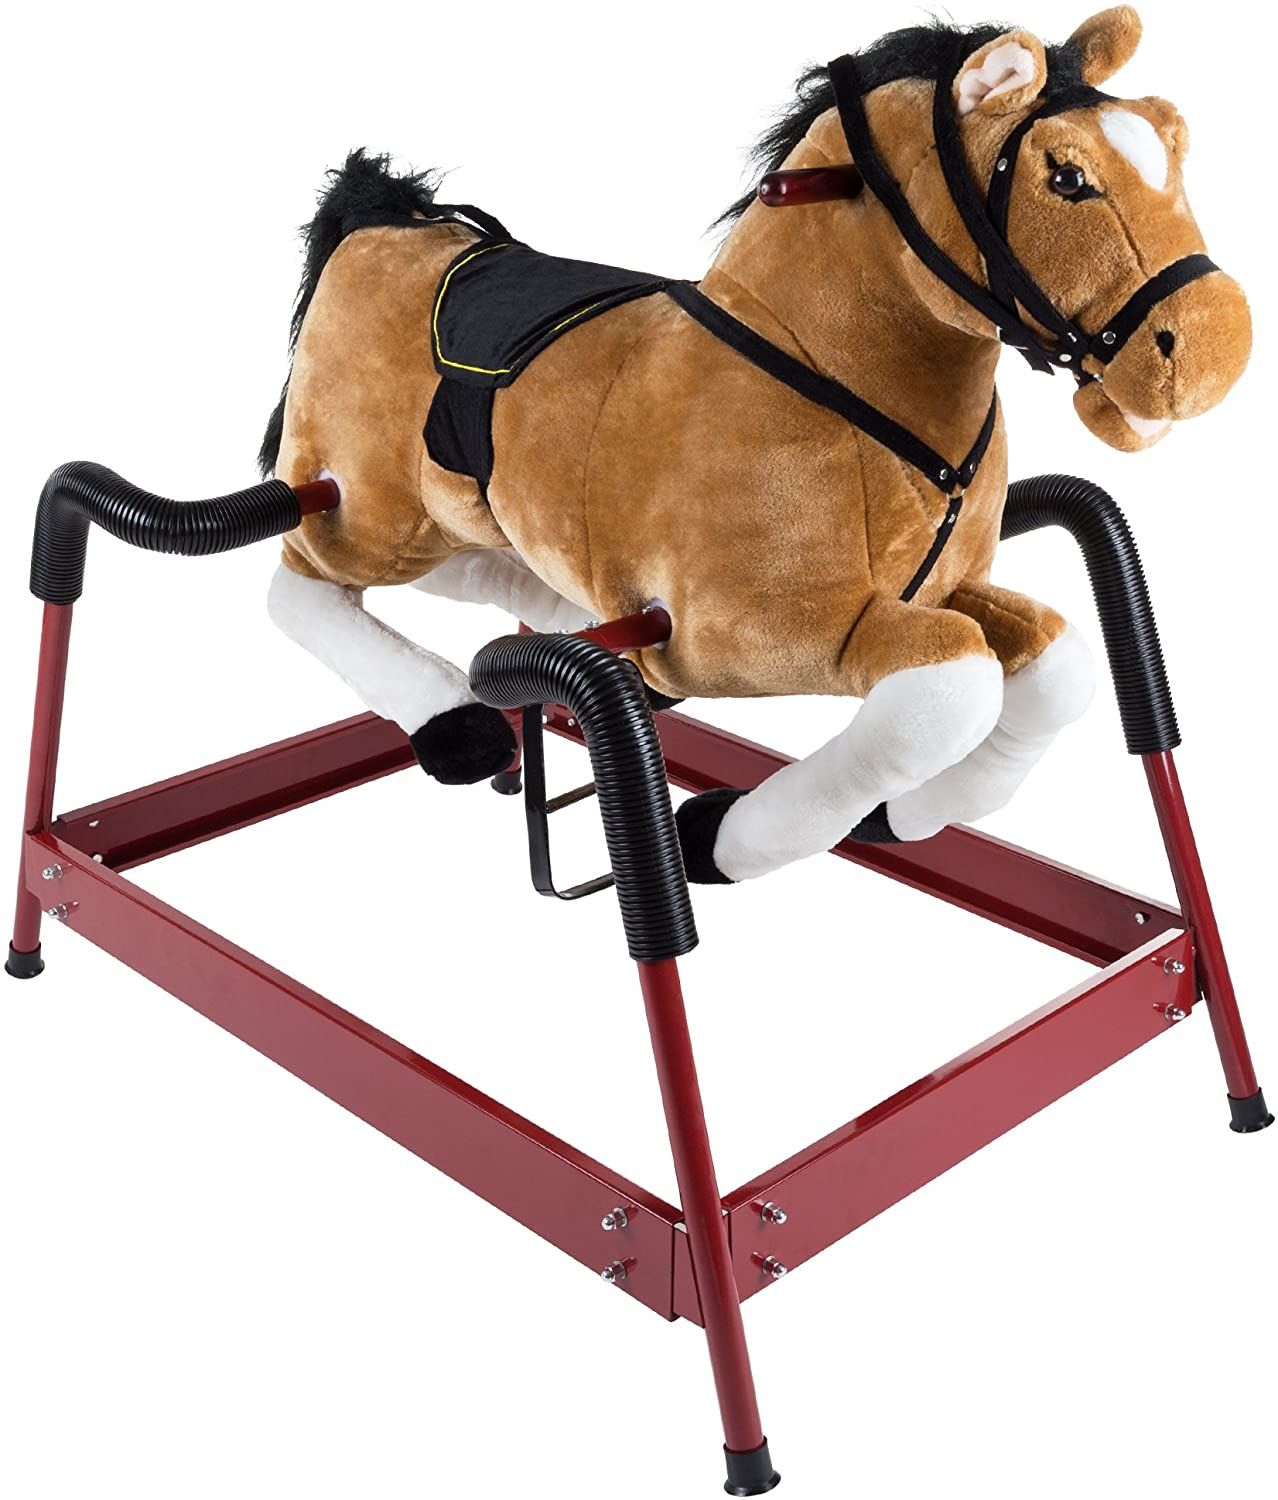 Spring Rocking Ranking TOP14 Horse cheap Plush Ride on Foot Adjustable Toy Stir with